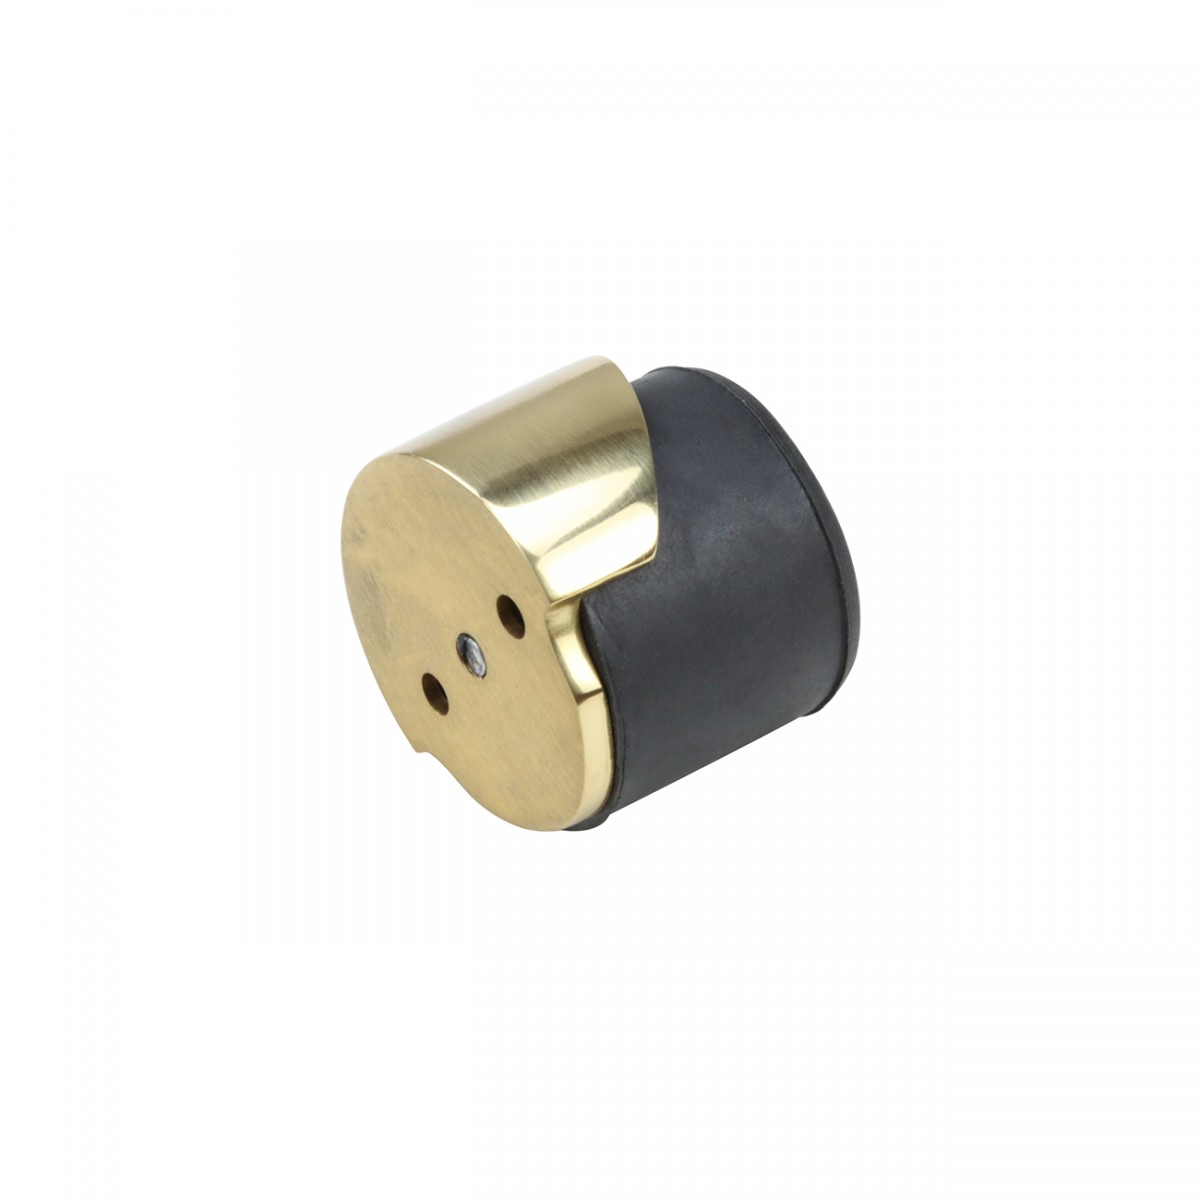 Black Door Stopper Brass Housing FloorWall Mount Rubber Floor Mounted Door Stopper Brass Door Stop Bumper Unique Dom Door Bumper